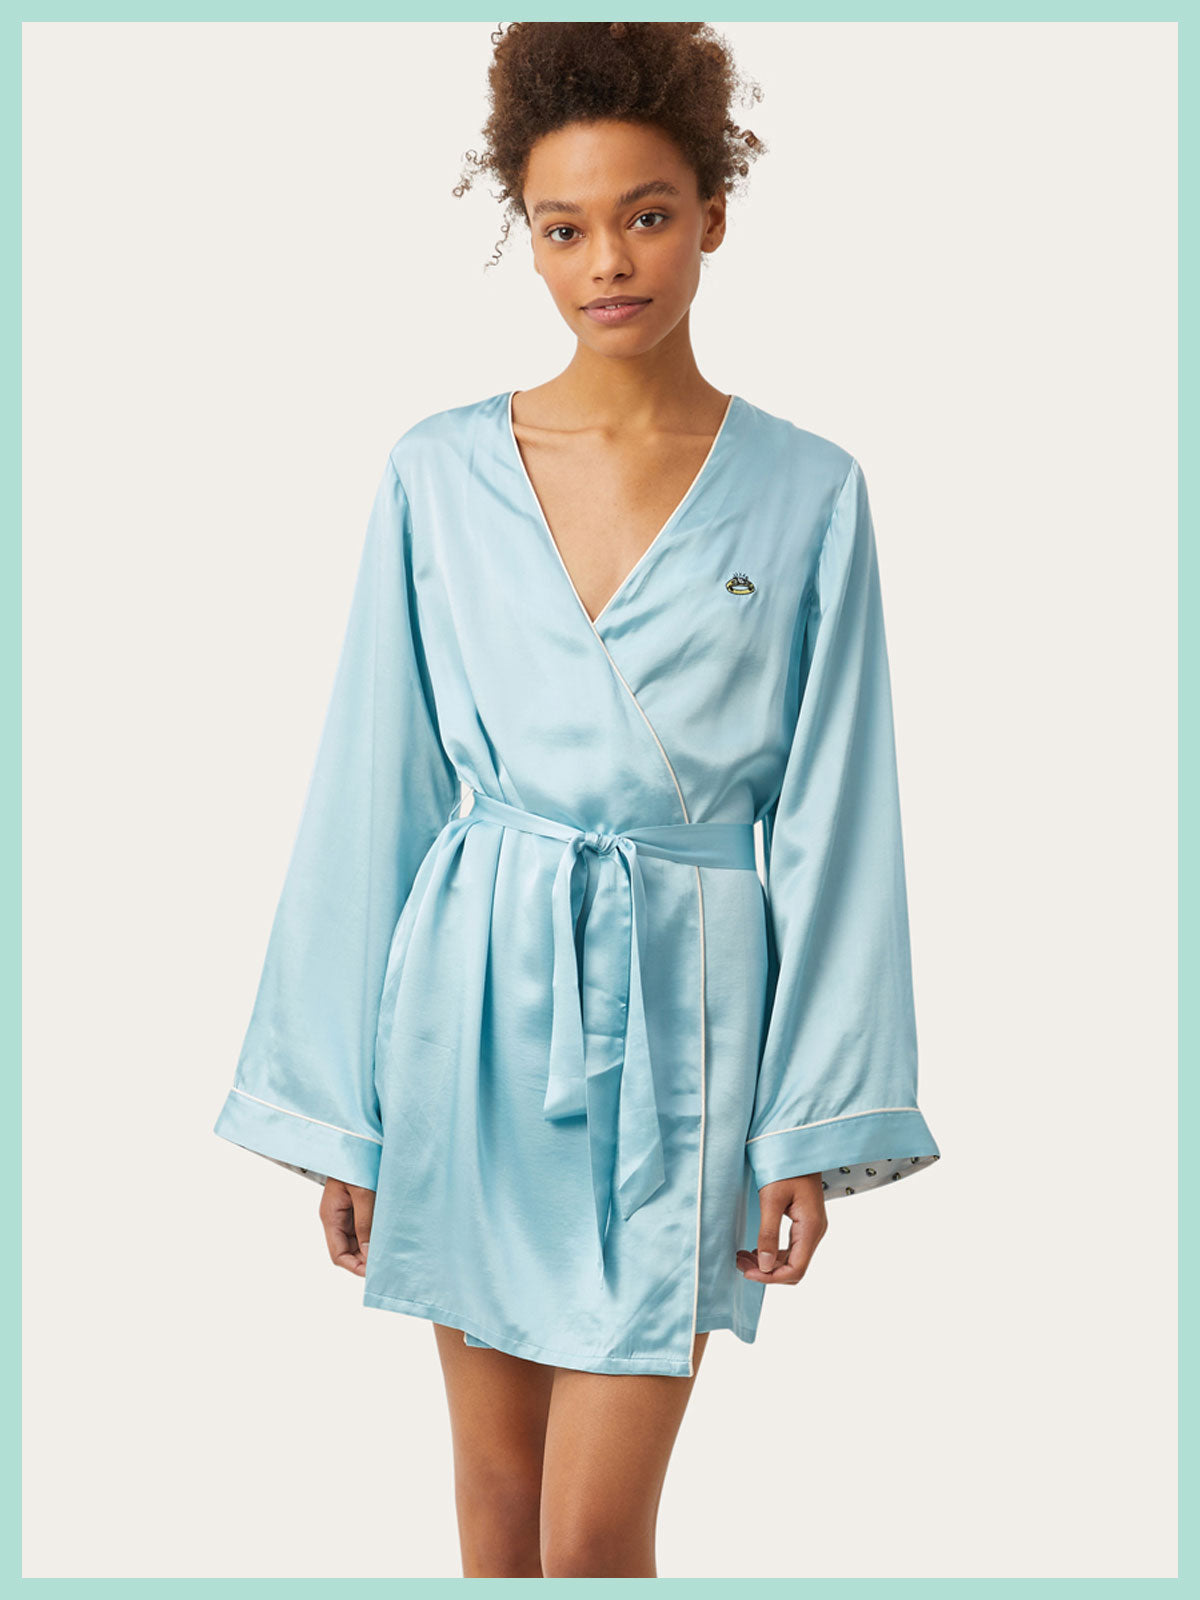 Langley Robe in Diamond Blue By Morgan Lane